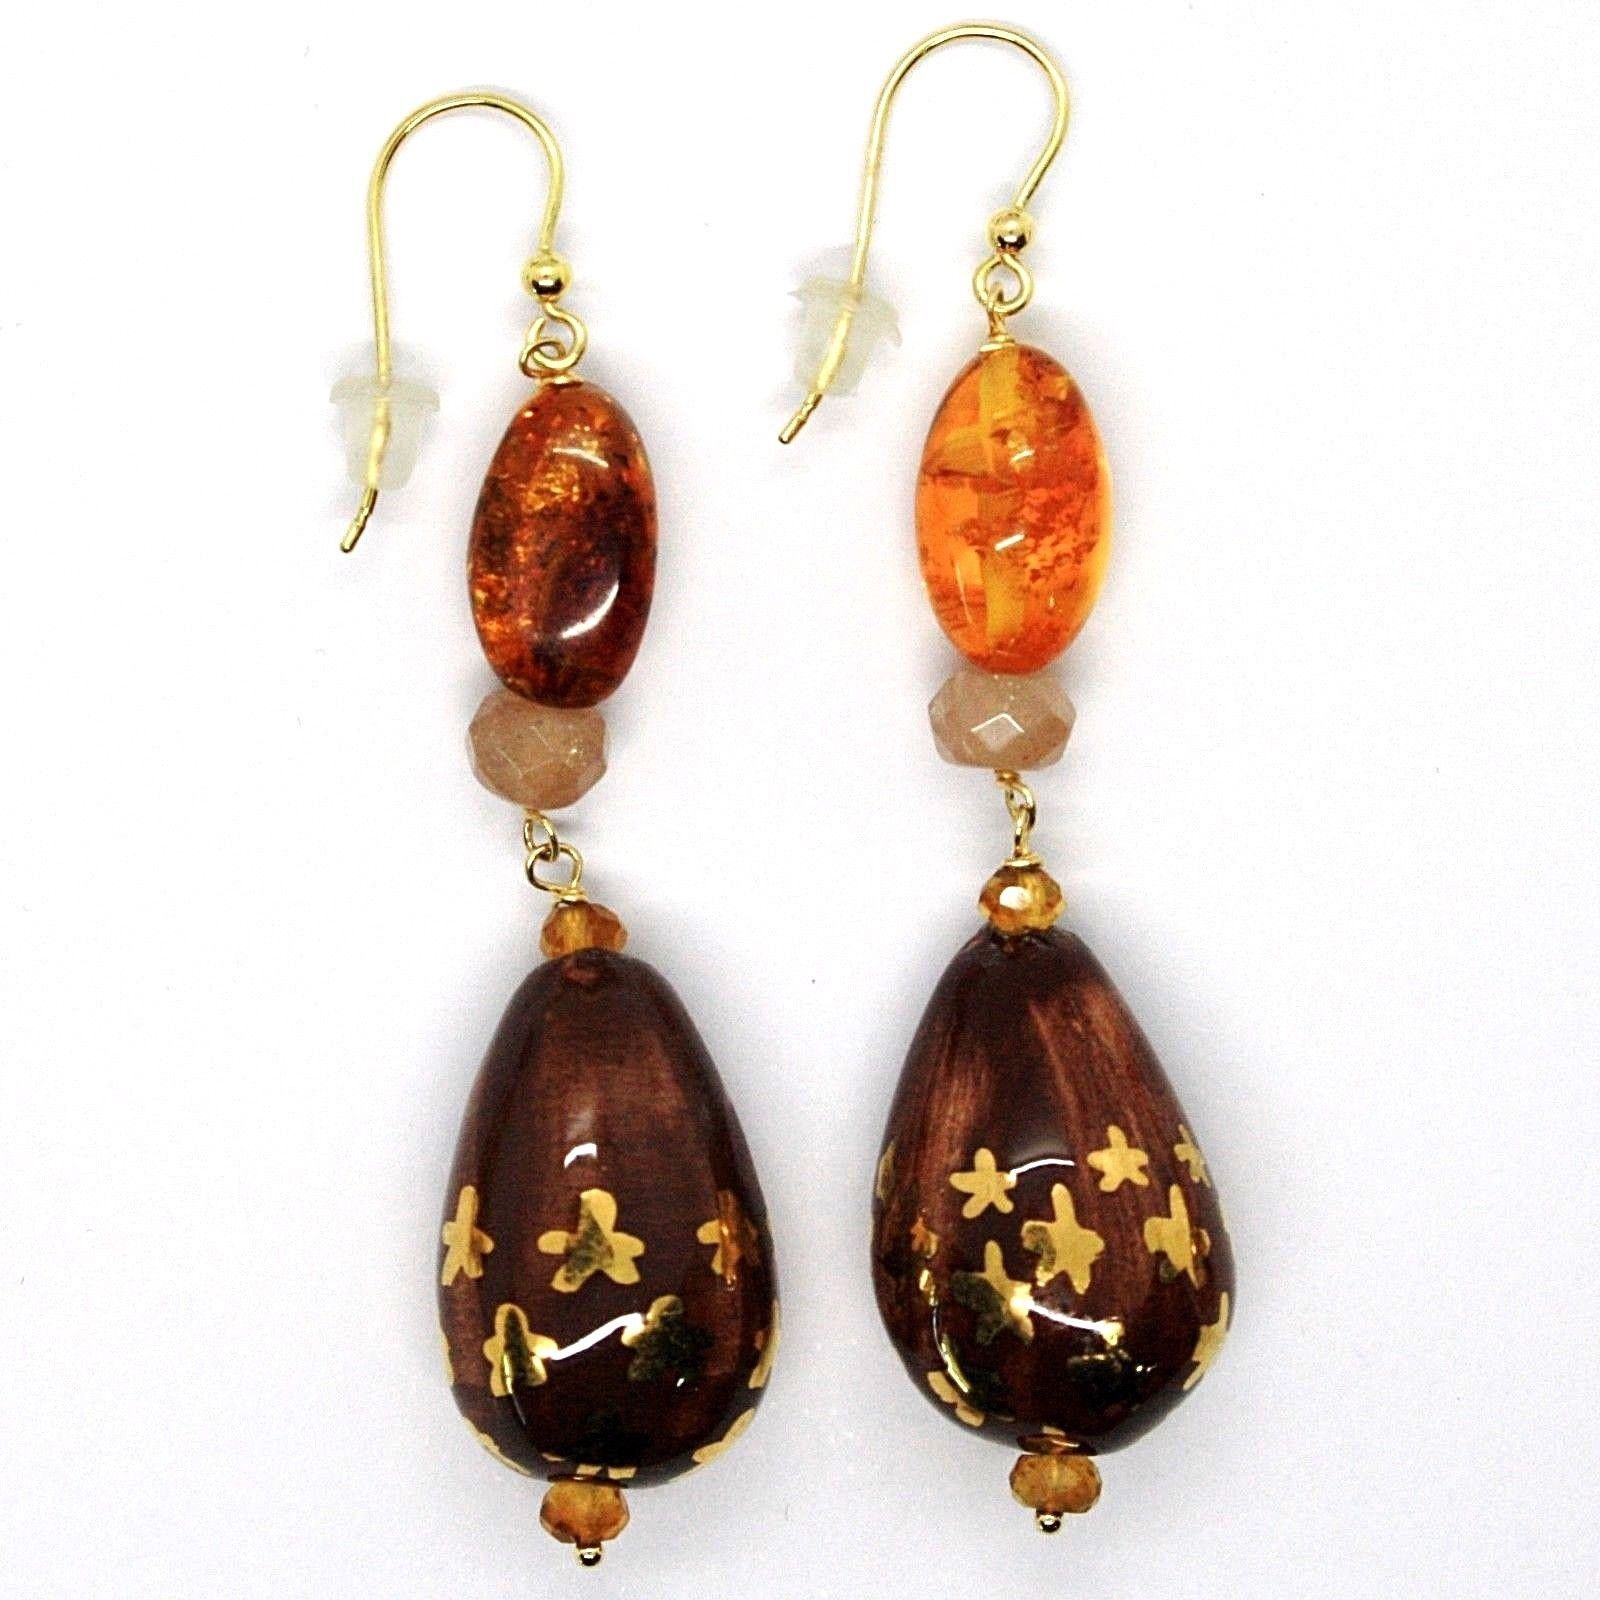 18K YELLOW GOLD EARRINGS AMBER CITRINE ADULARIA, POTTERY DROPS HAND PAINTED STAR